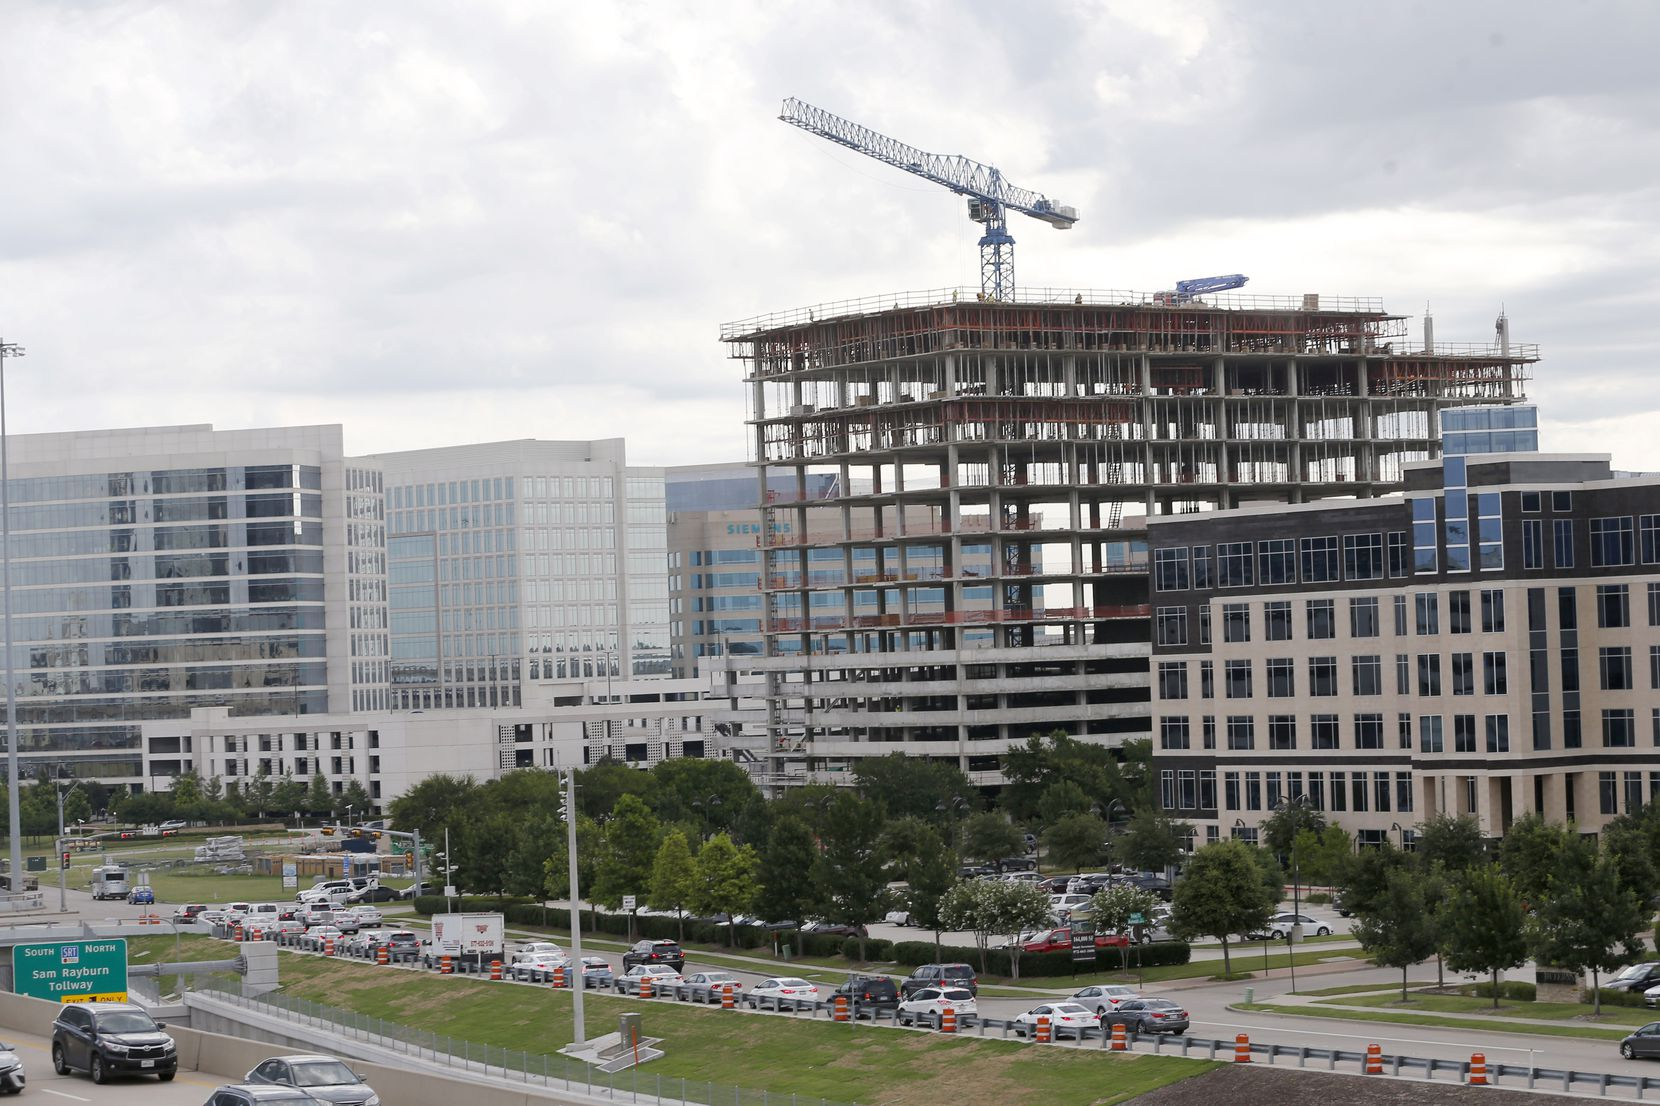 Construction continues at Headquarters 2 office building in Plano, one of the largest office projects in the Dallas area..